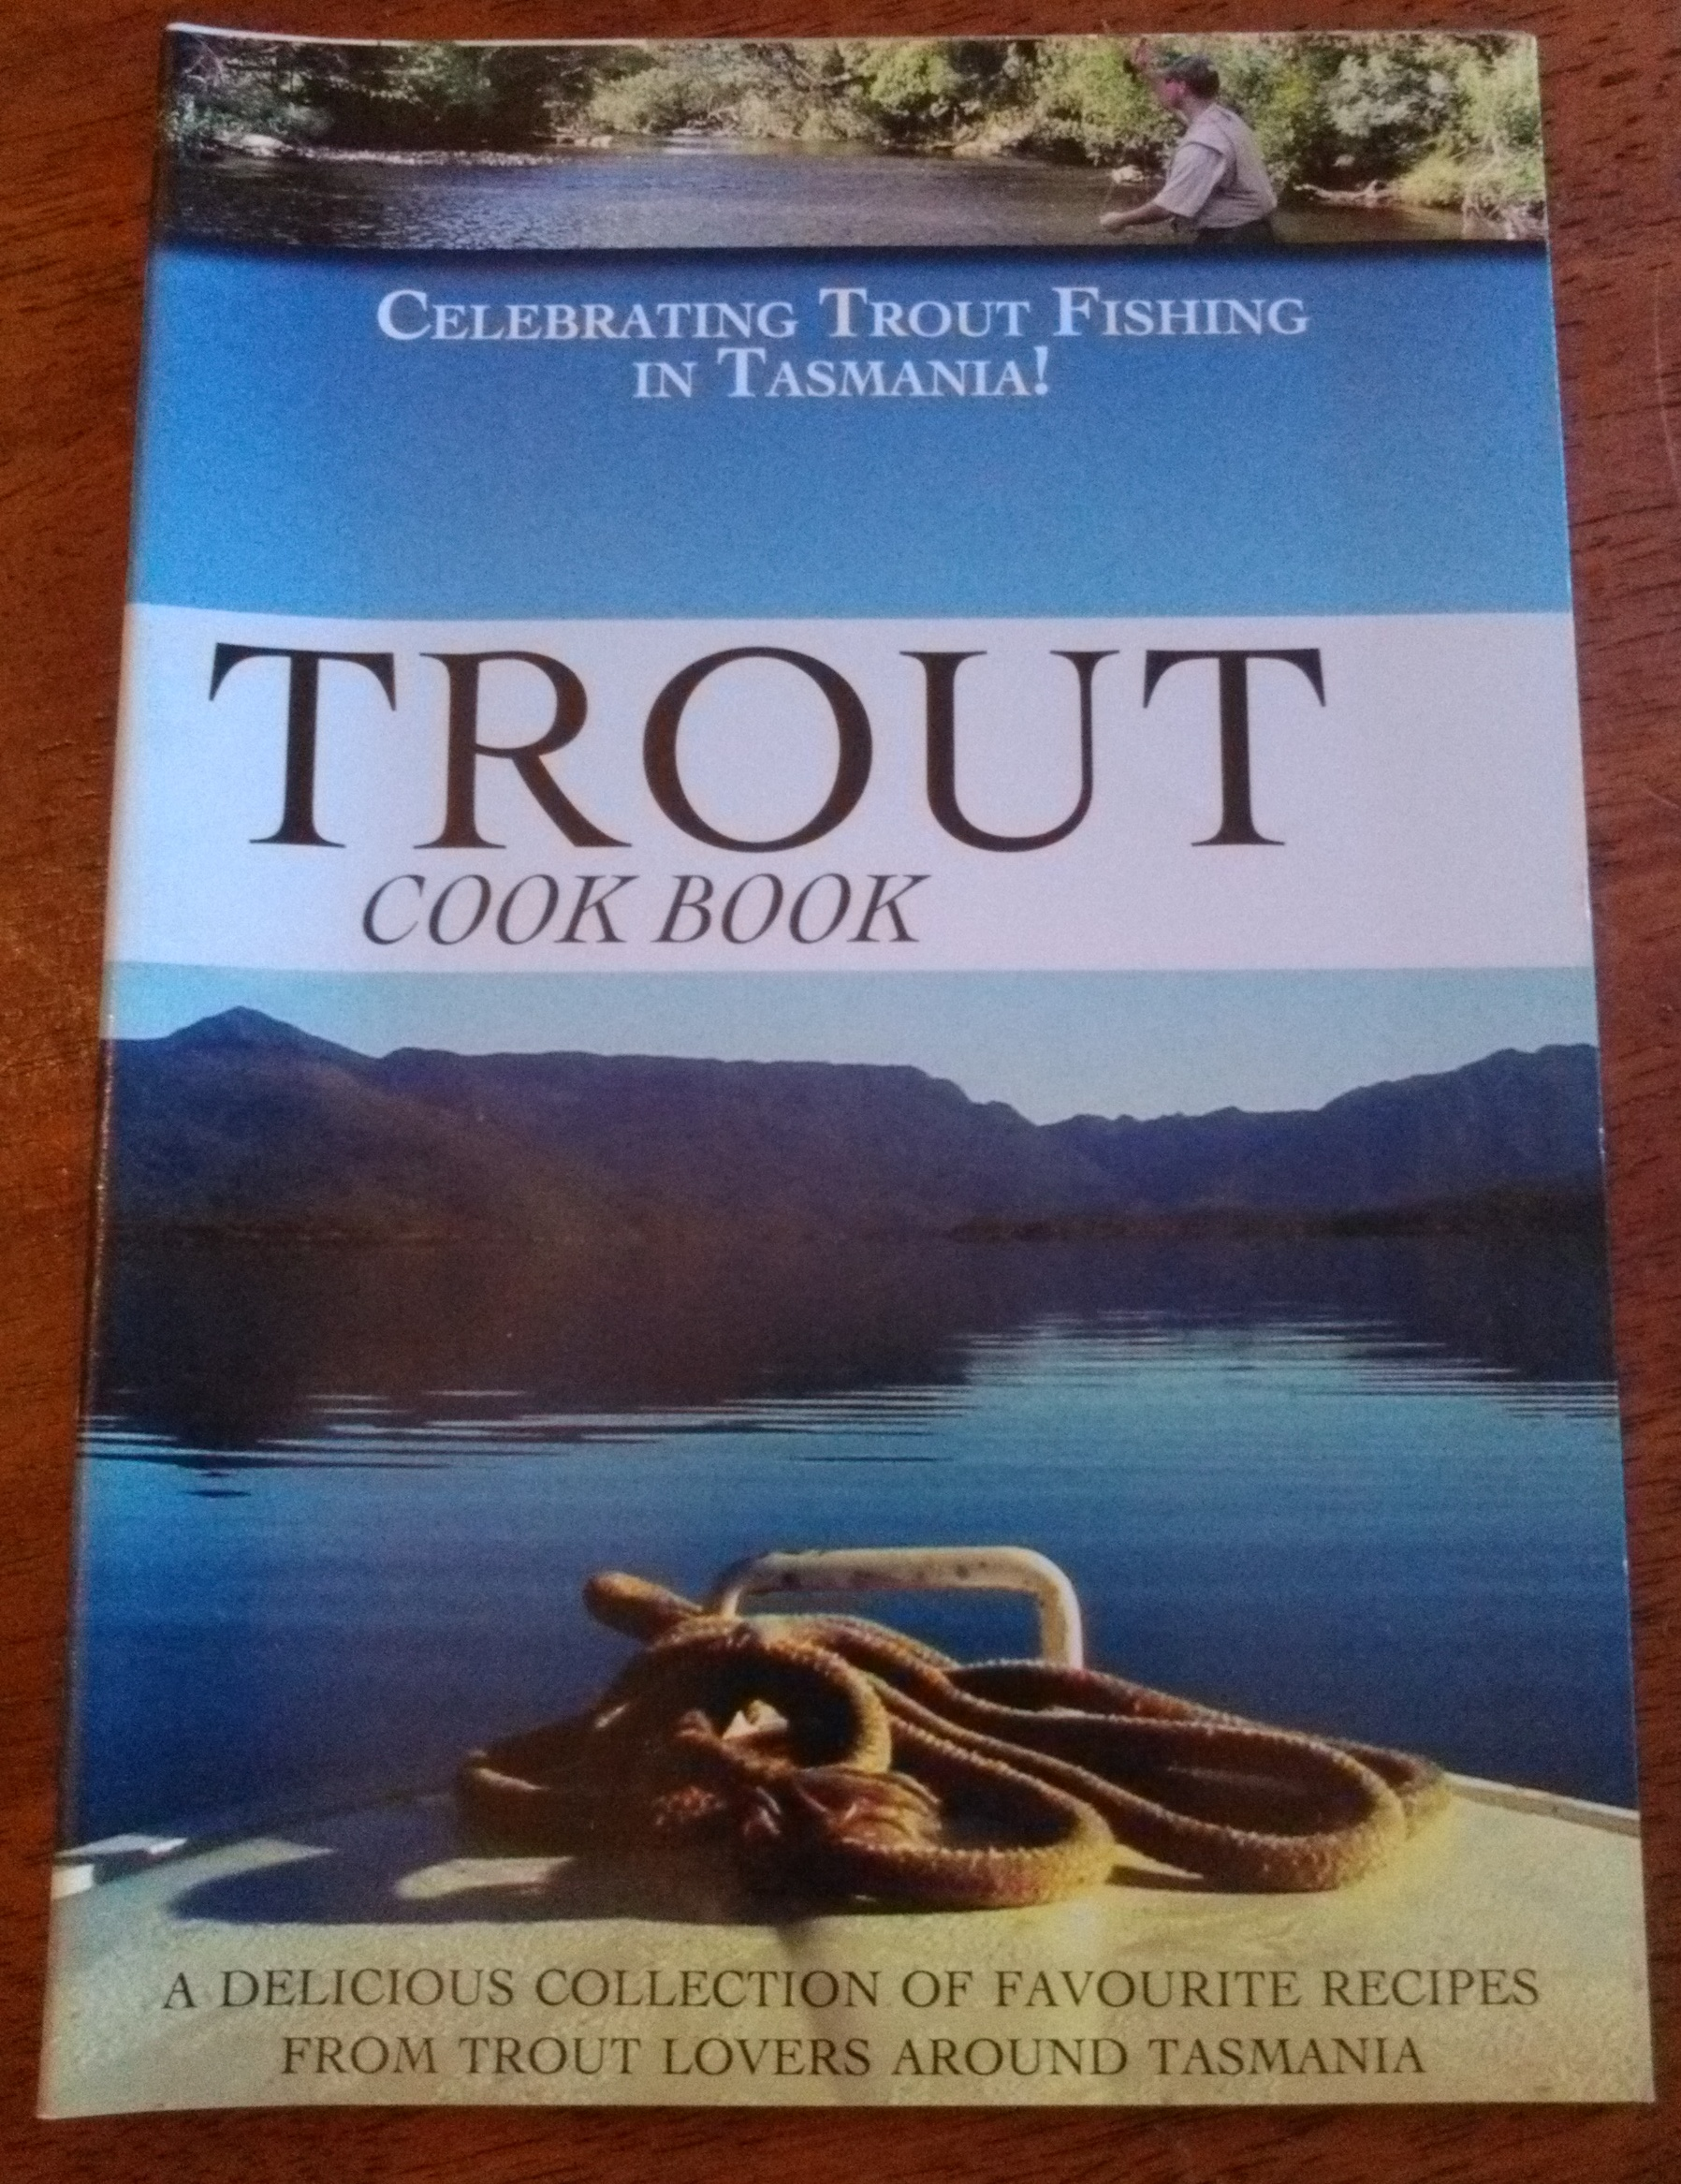 Trout Cook Book - Celebrating Trout Fishing in Tasmania